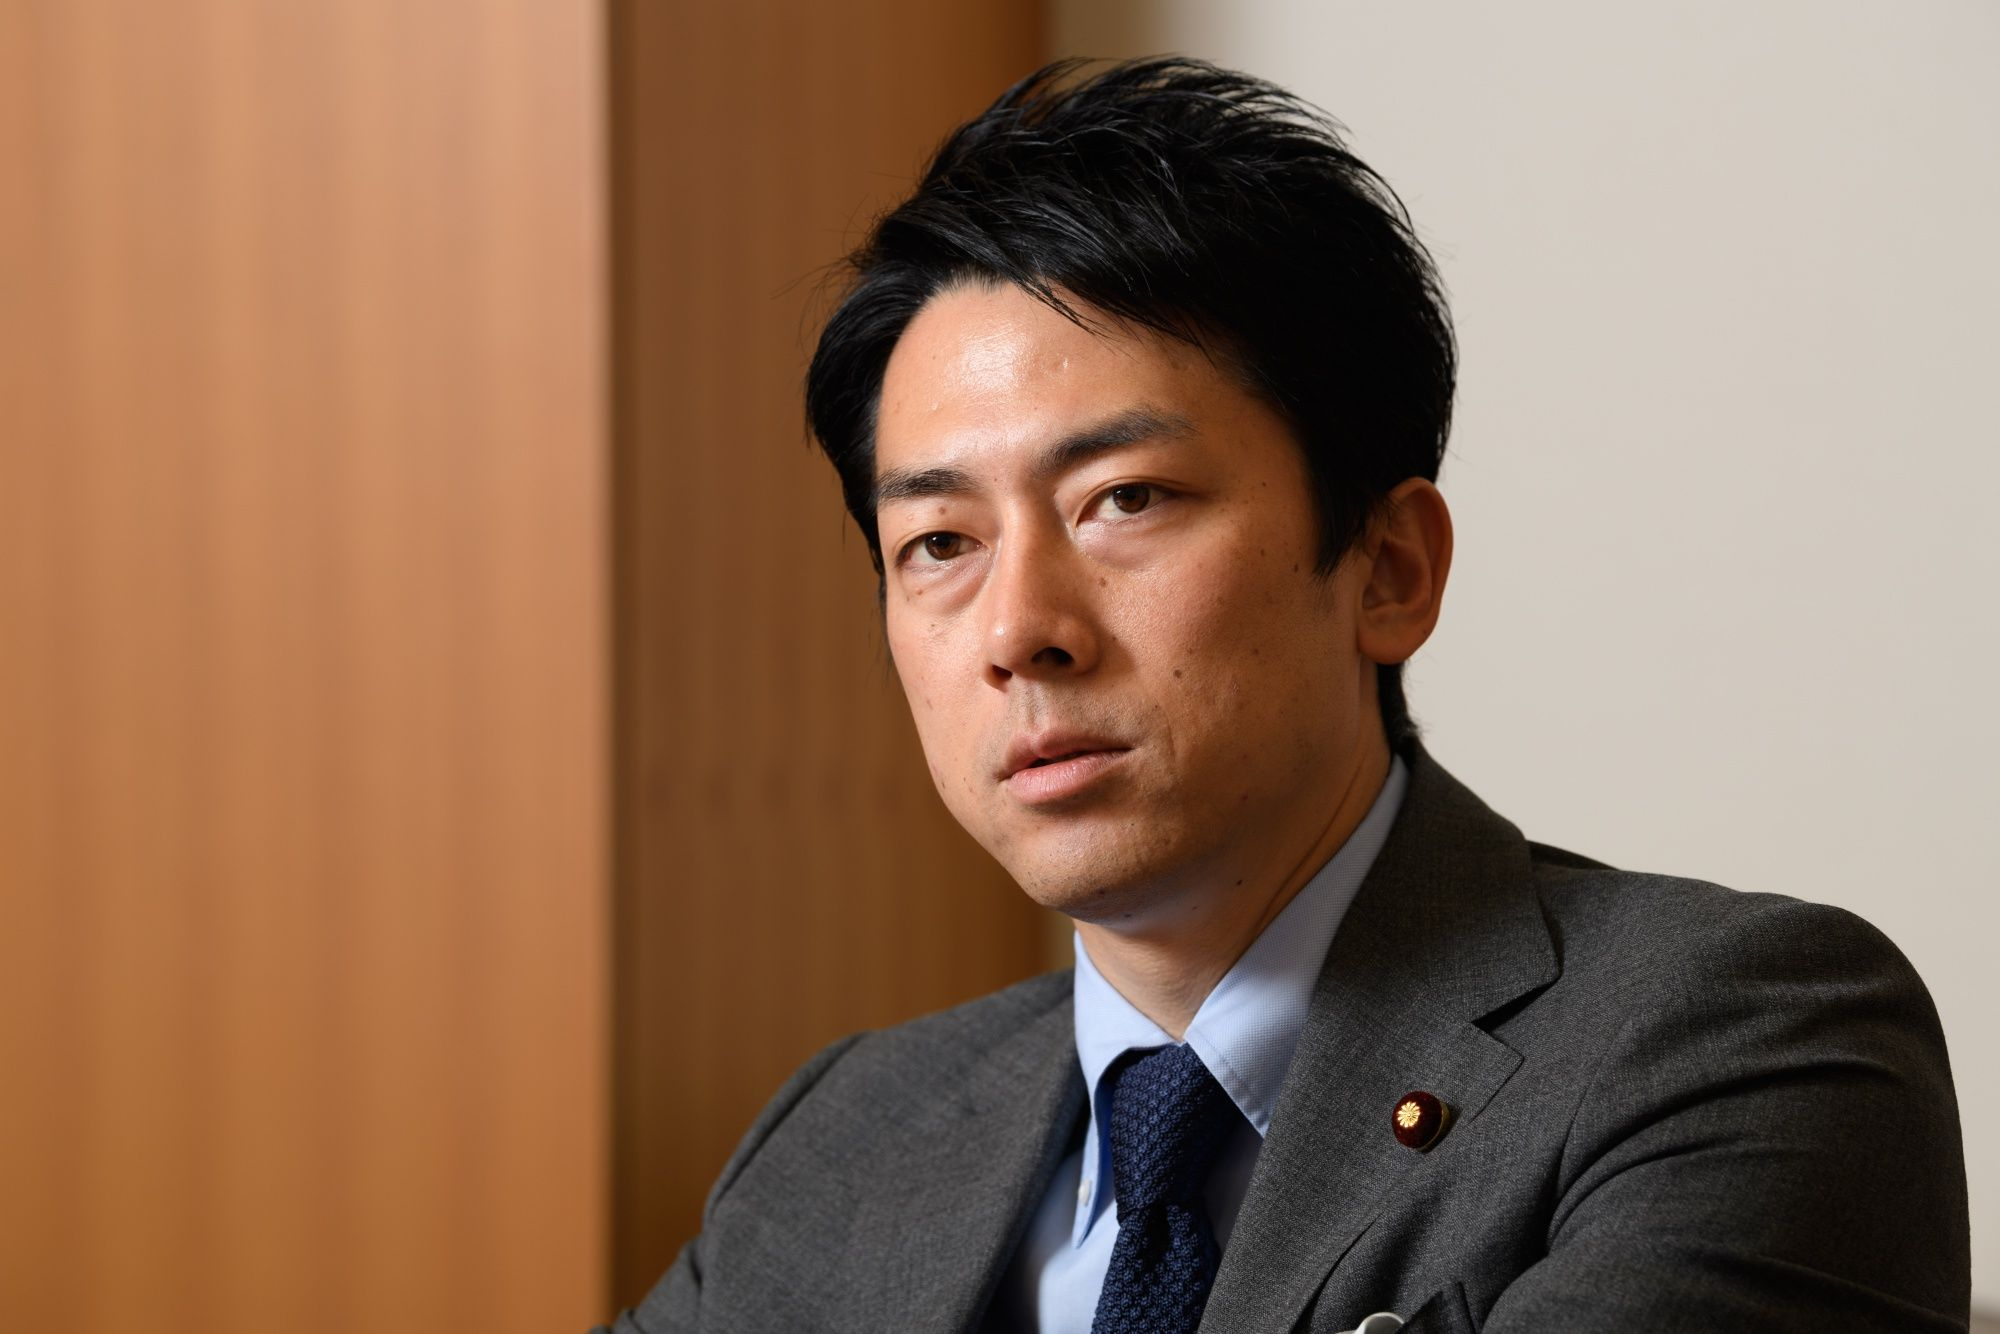 Japan Cabinet Star Set to Make History With Paternity Leave